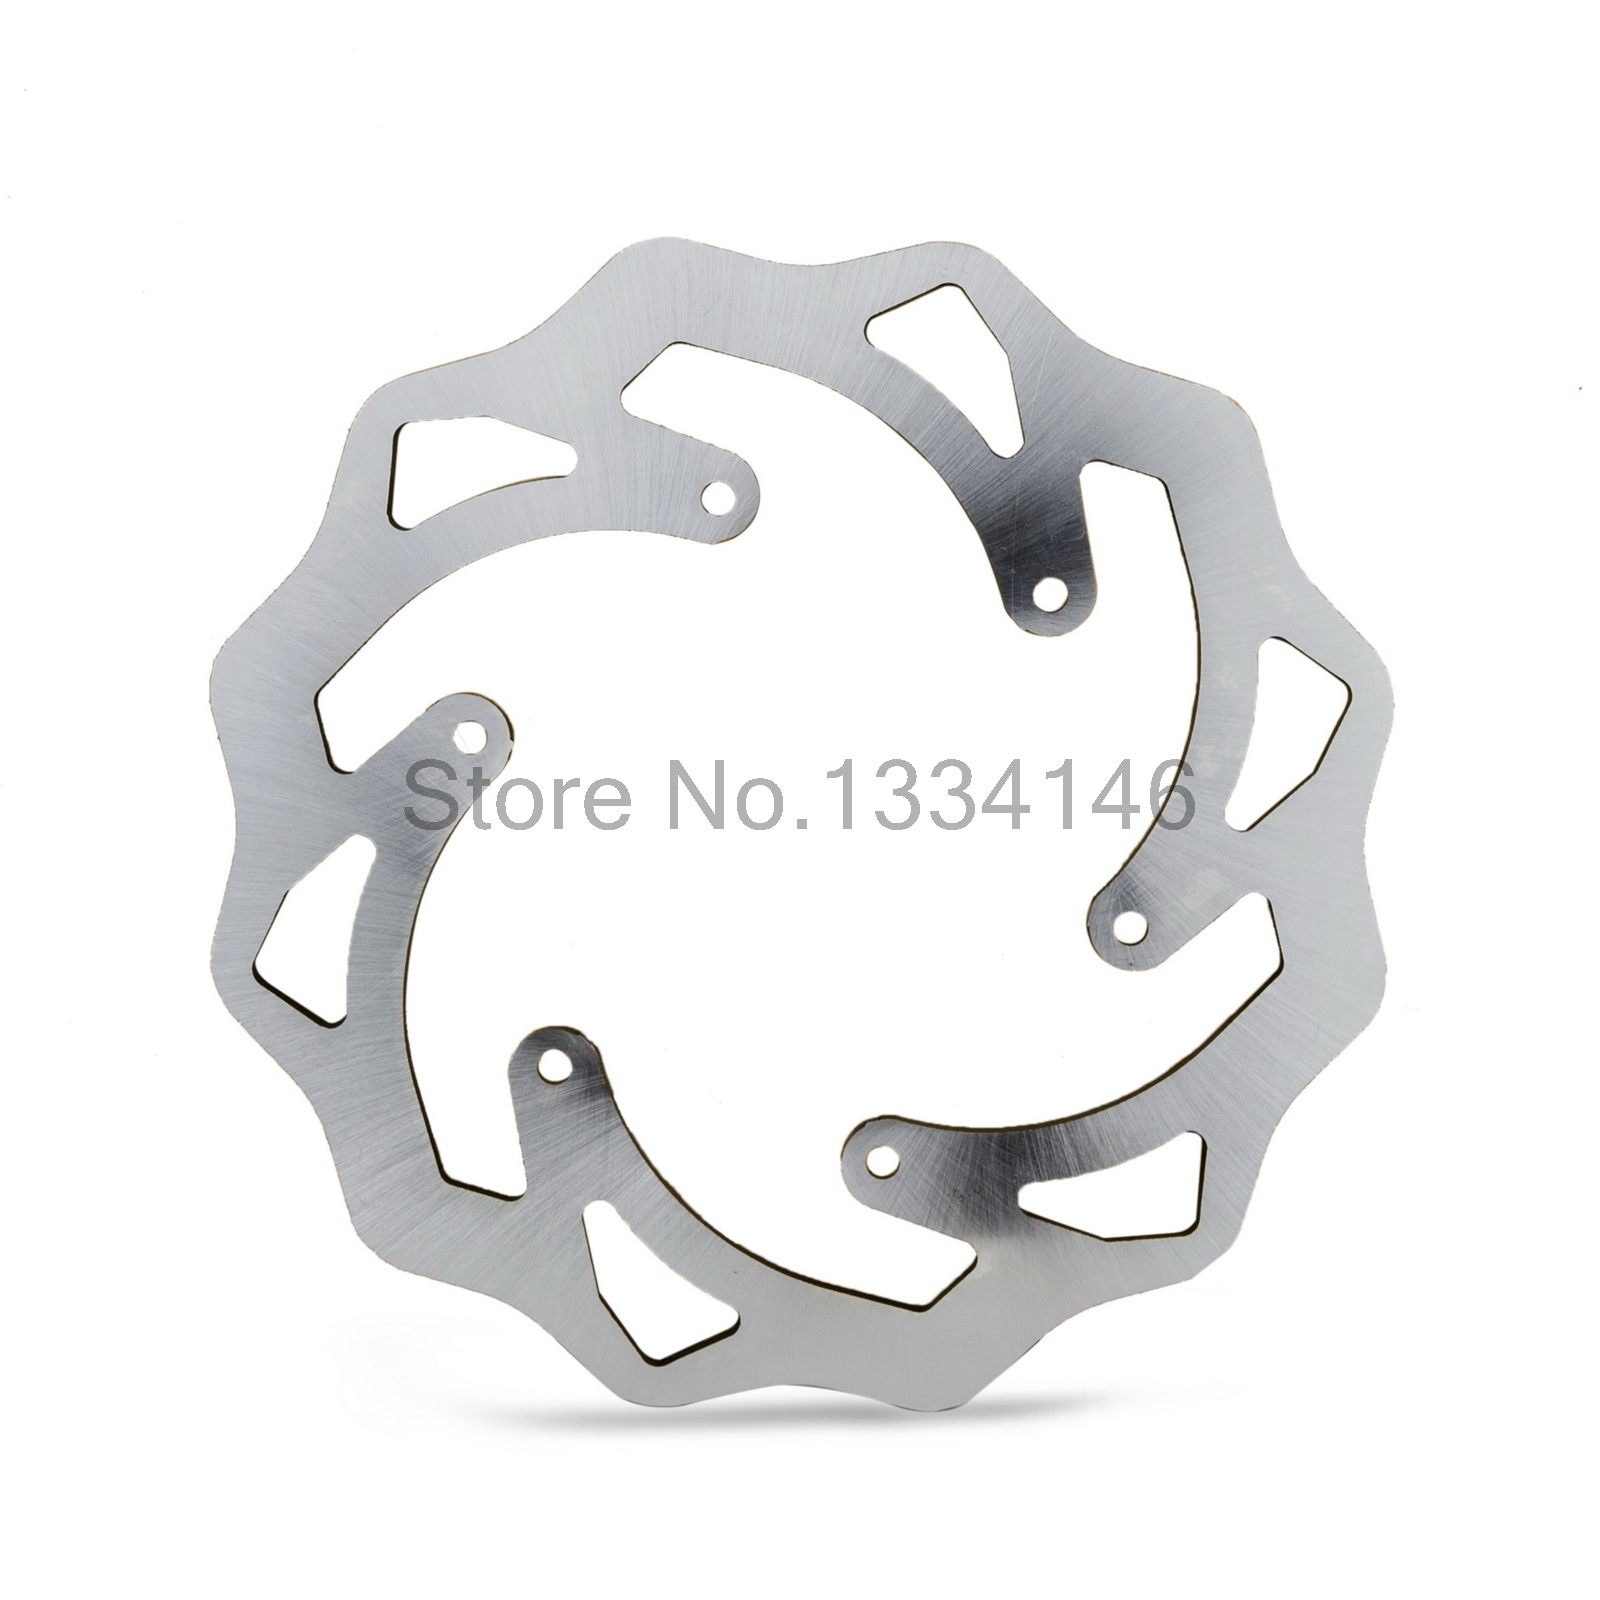 Motorcycle Rear Brake Disc Rotor For KTM 125 250 300 400 450 525 540 600 625 640 EXC Six Days SX MXC SXF EXCF XCW LC4 ENDURO XCF l r aluminum radiator for ktm 400 450 525 540 sx exc mxc 2003 2007 2004 2005 2006